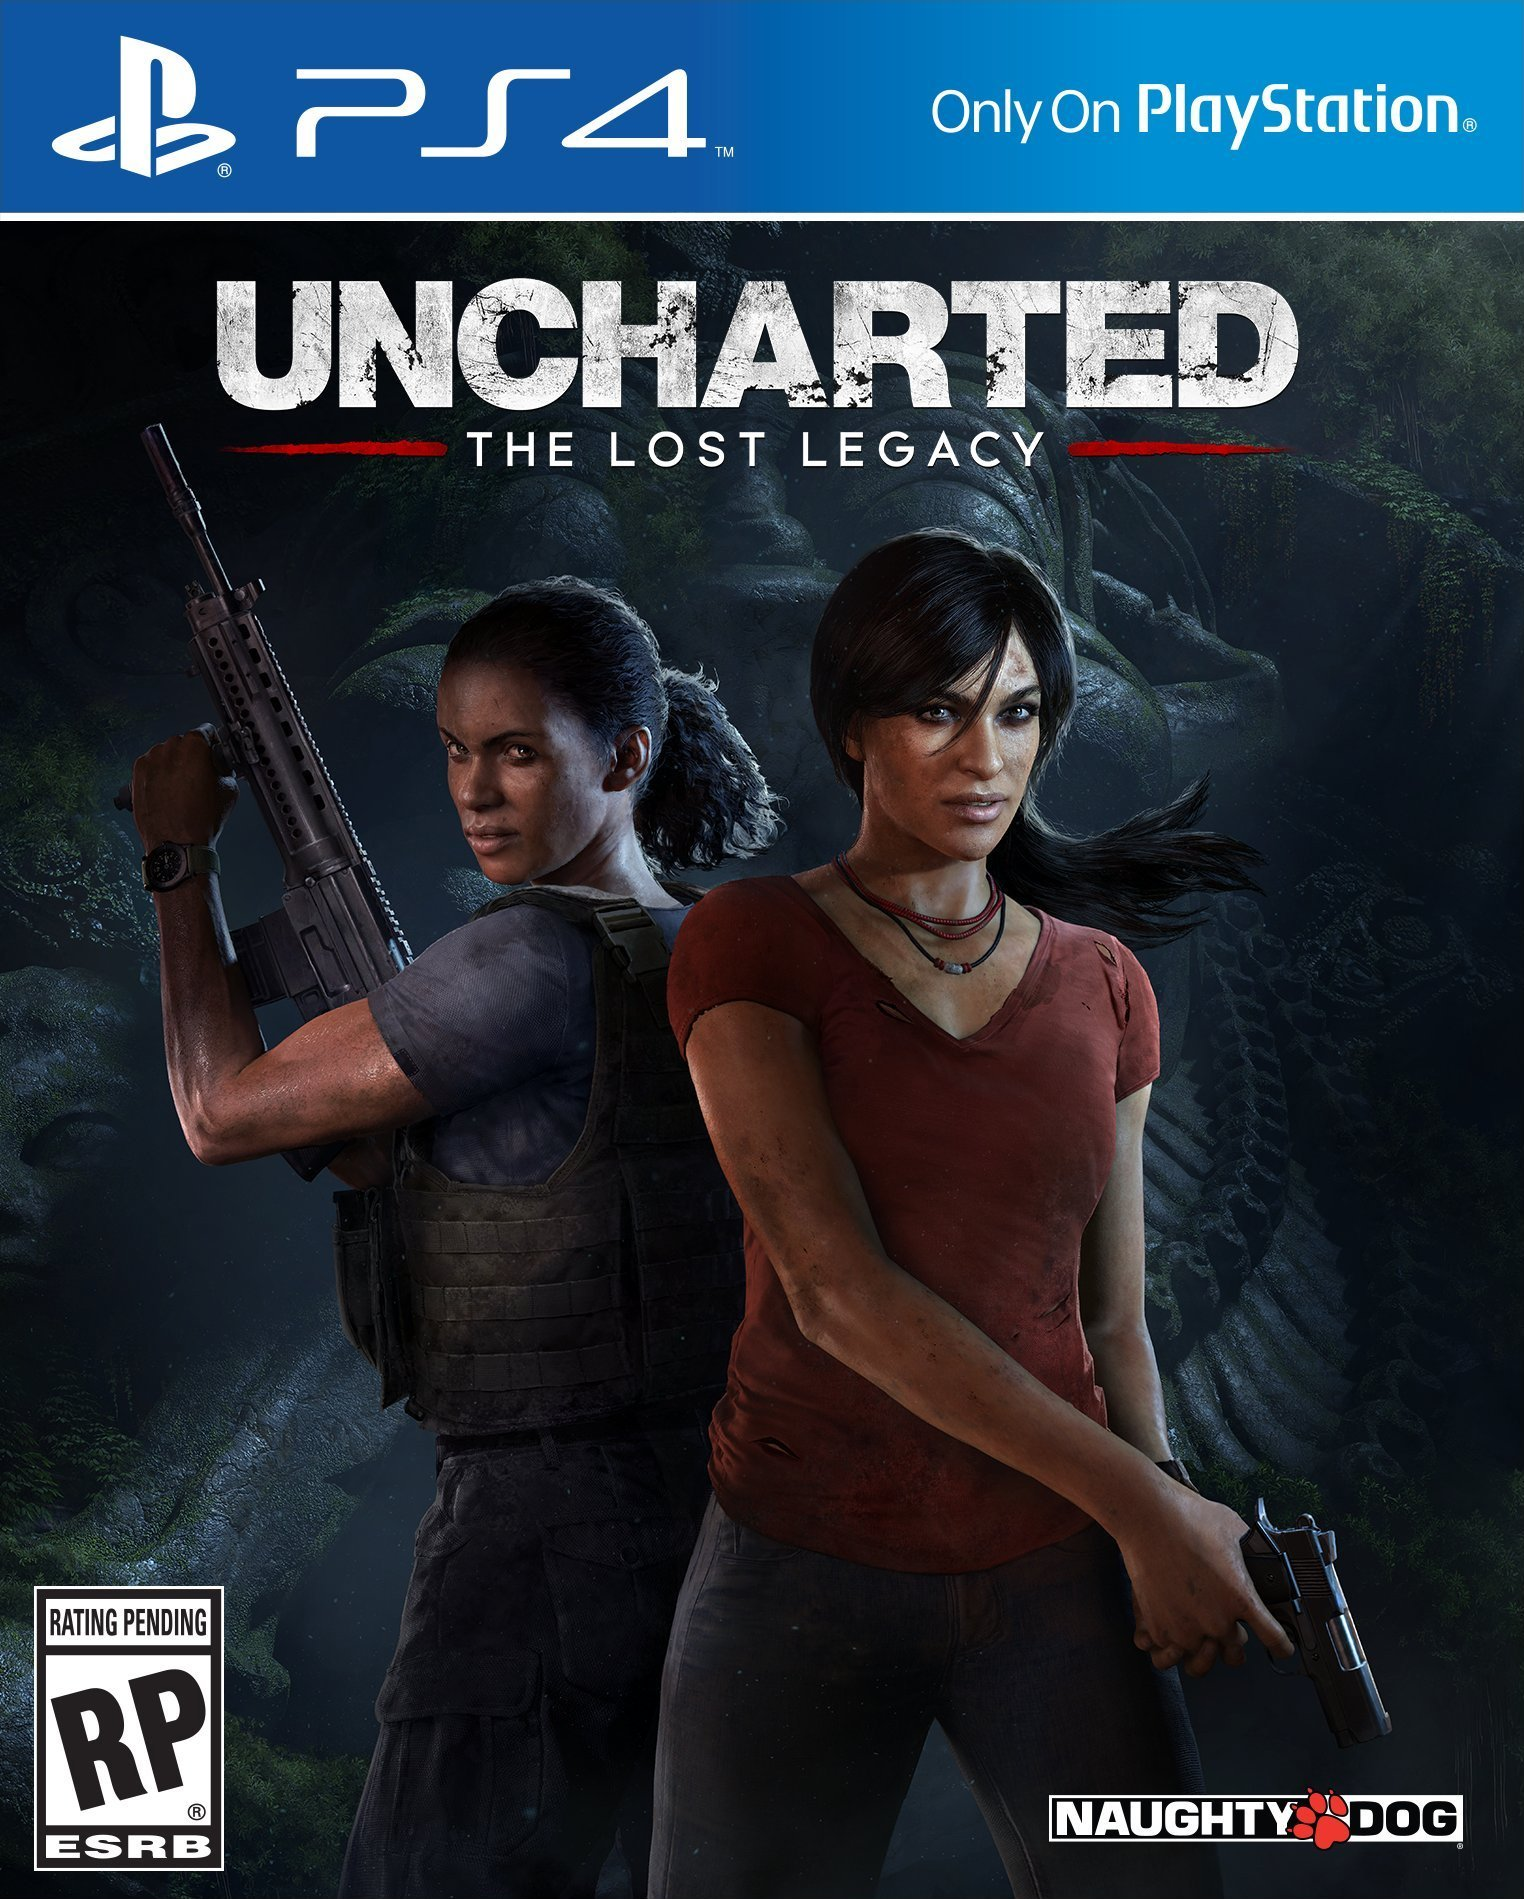 Box art - Uncharted: The Lost Legacy